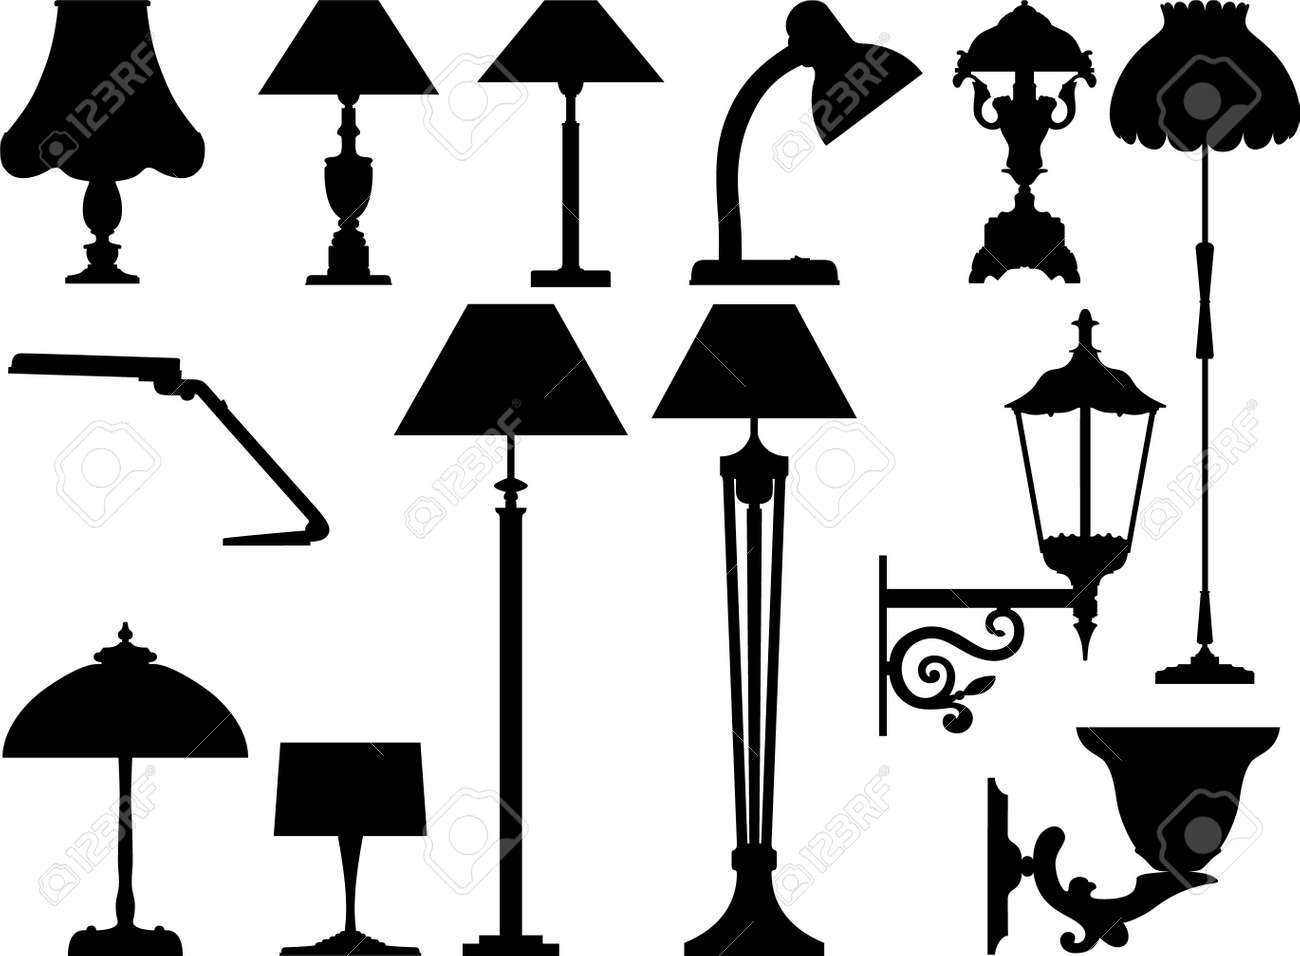 icon lighting. icon lighting vector icons of devices in it is black white color a l